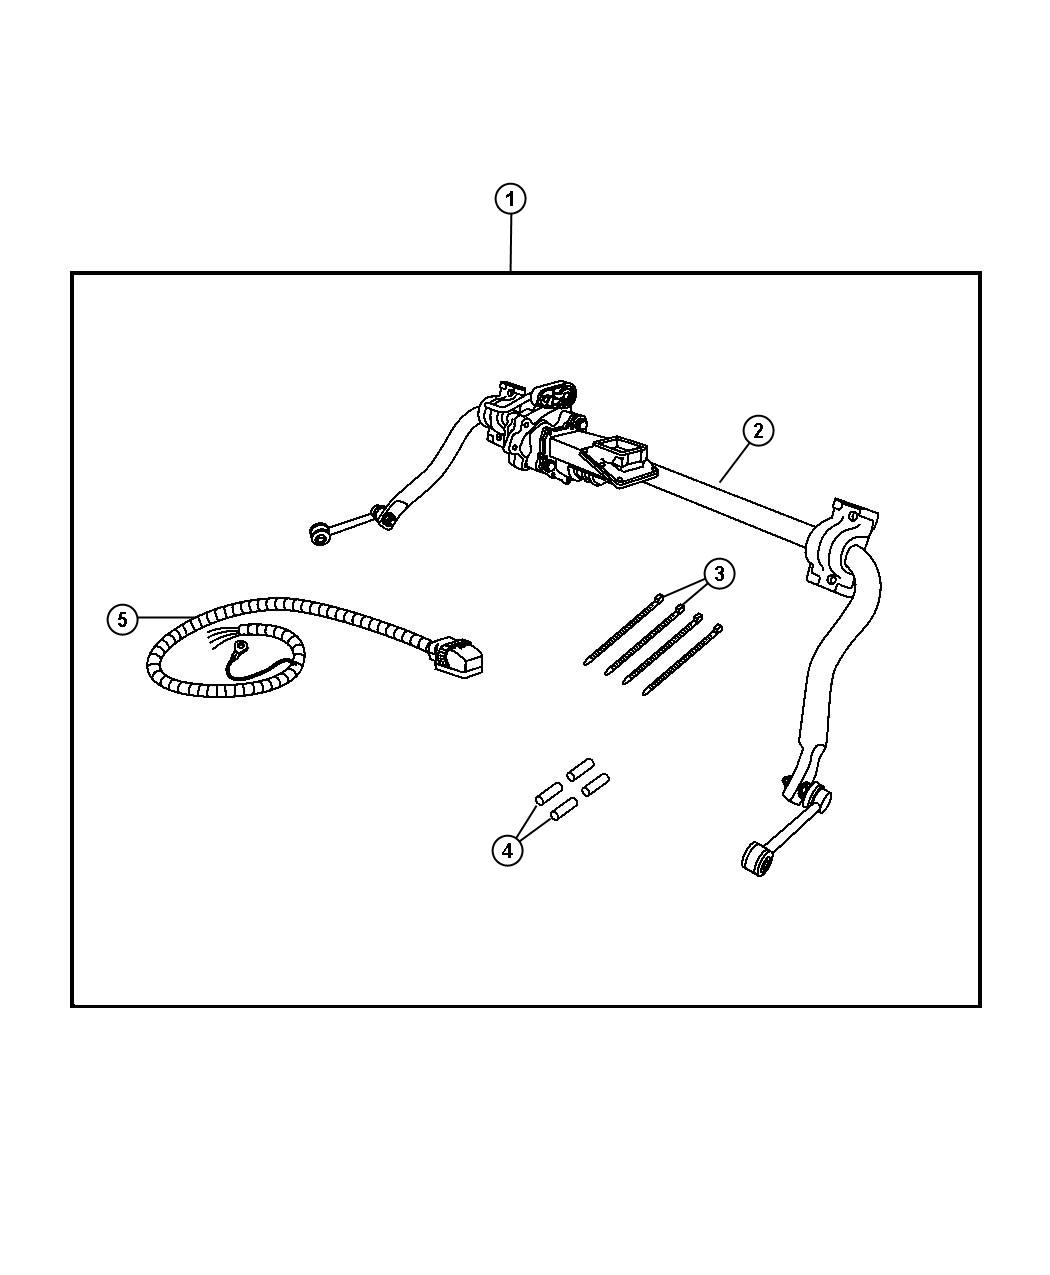 2012 dodge ram 1500 kit includes wiring  sway bar assembly  and i